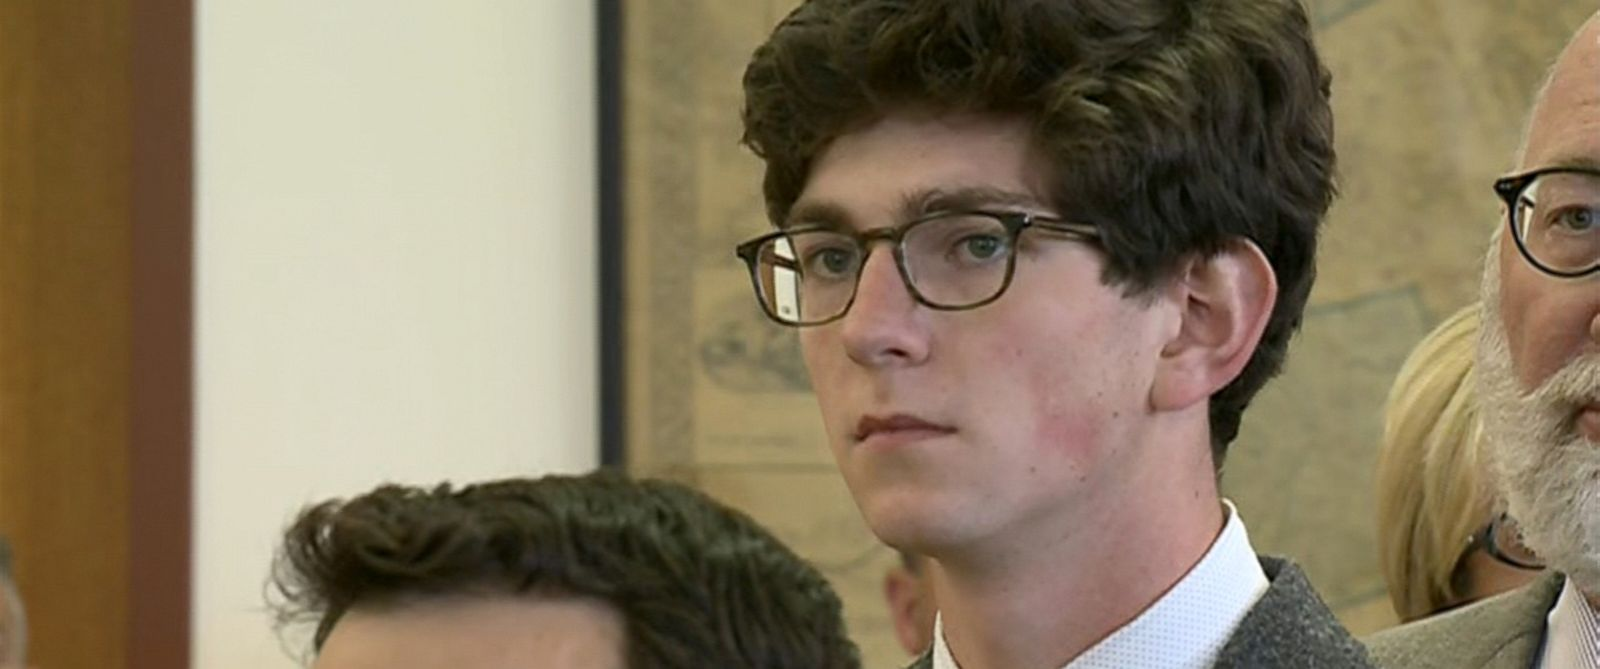 PHOTO: Owen Labrie is seen in court, Aug. 28, 2015, in Concord, N.H.